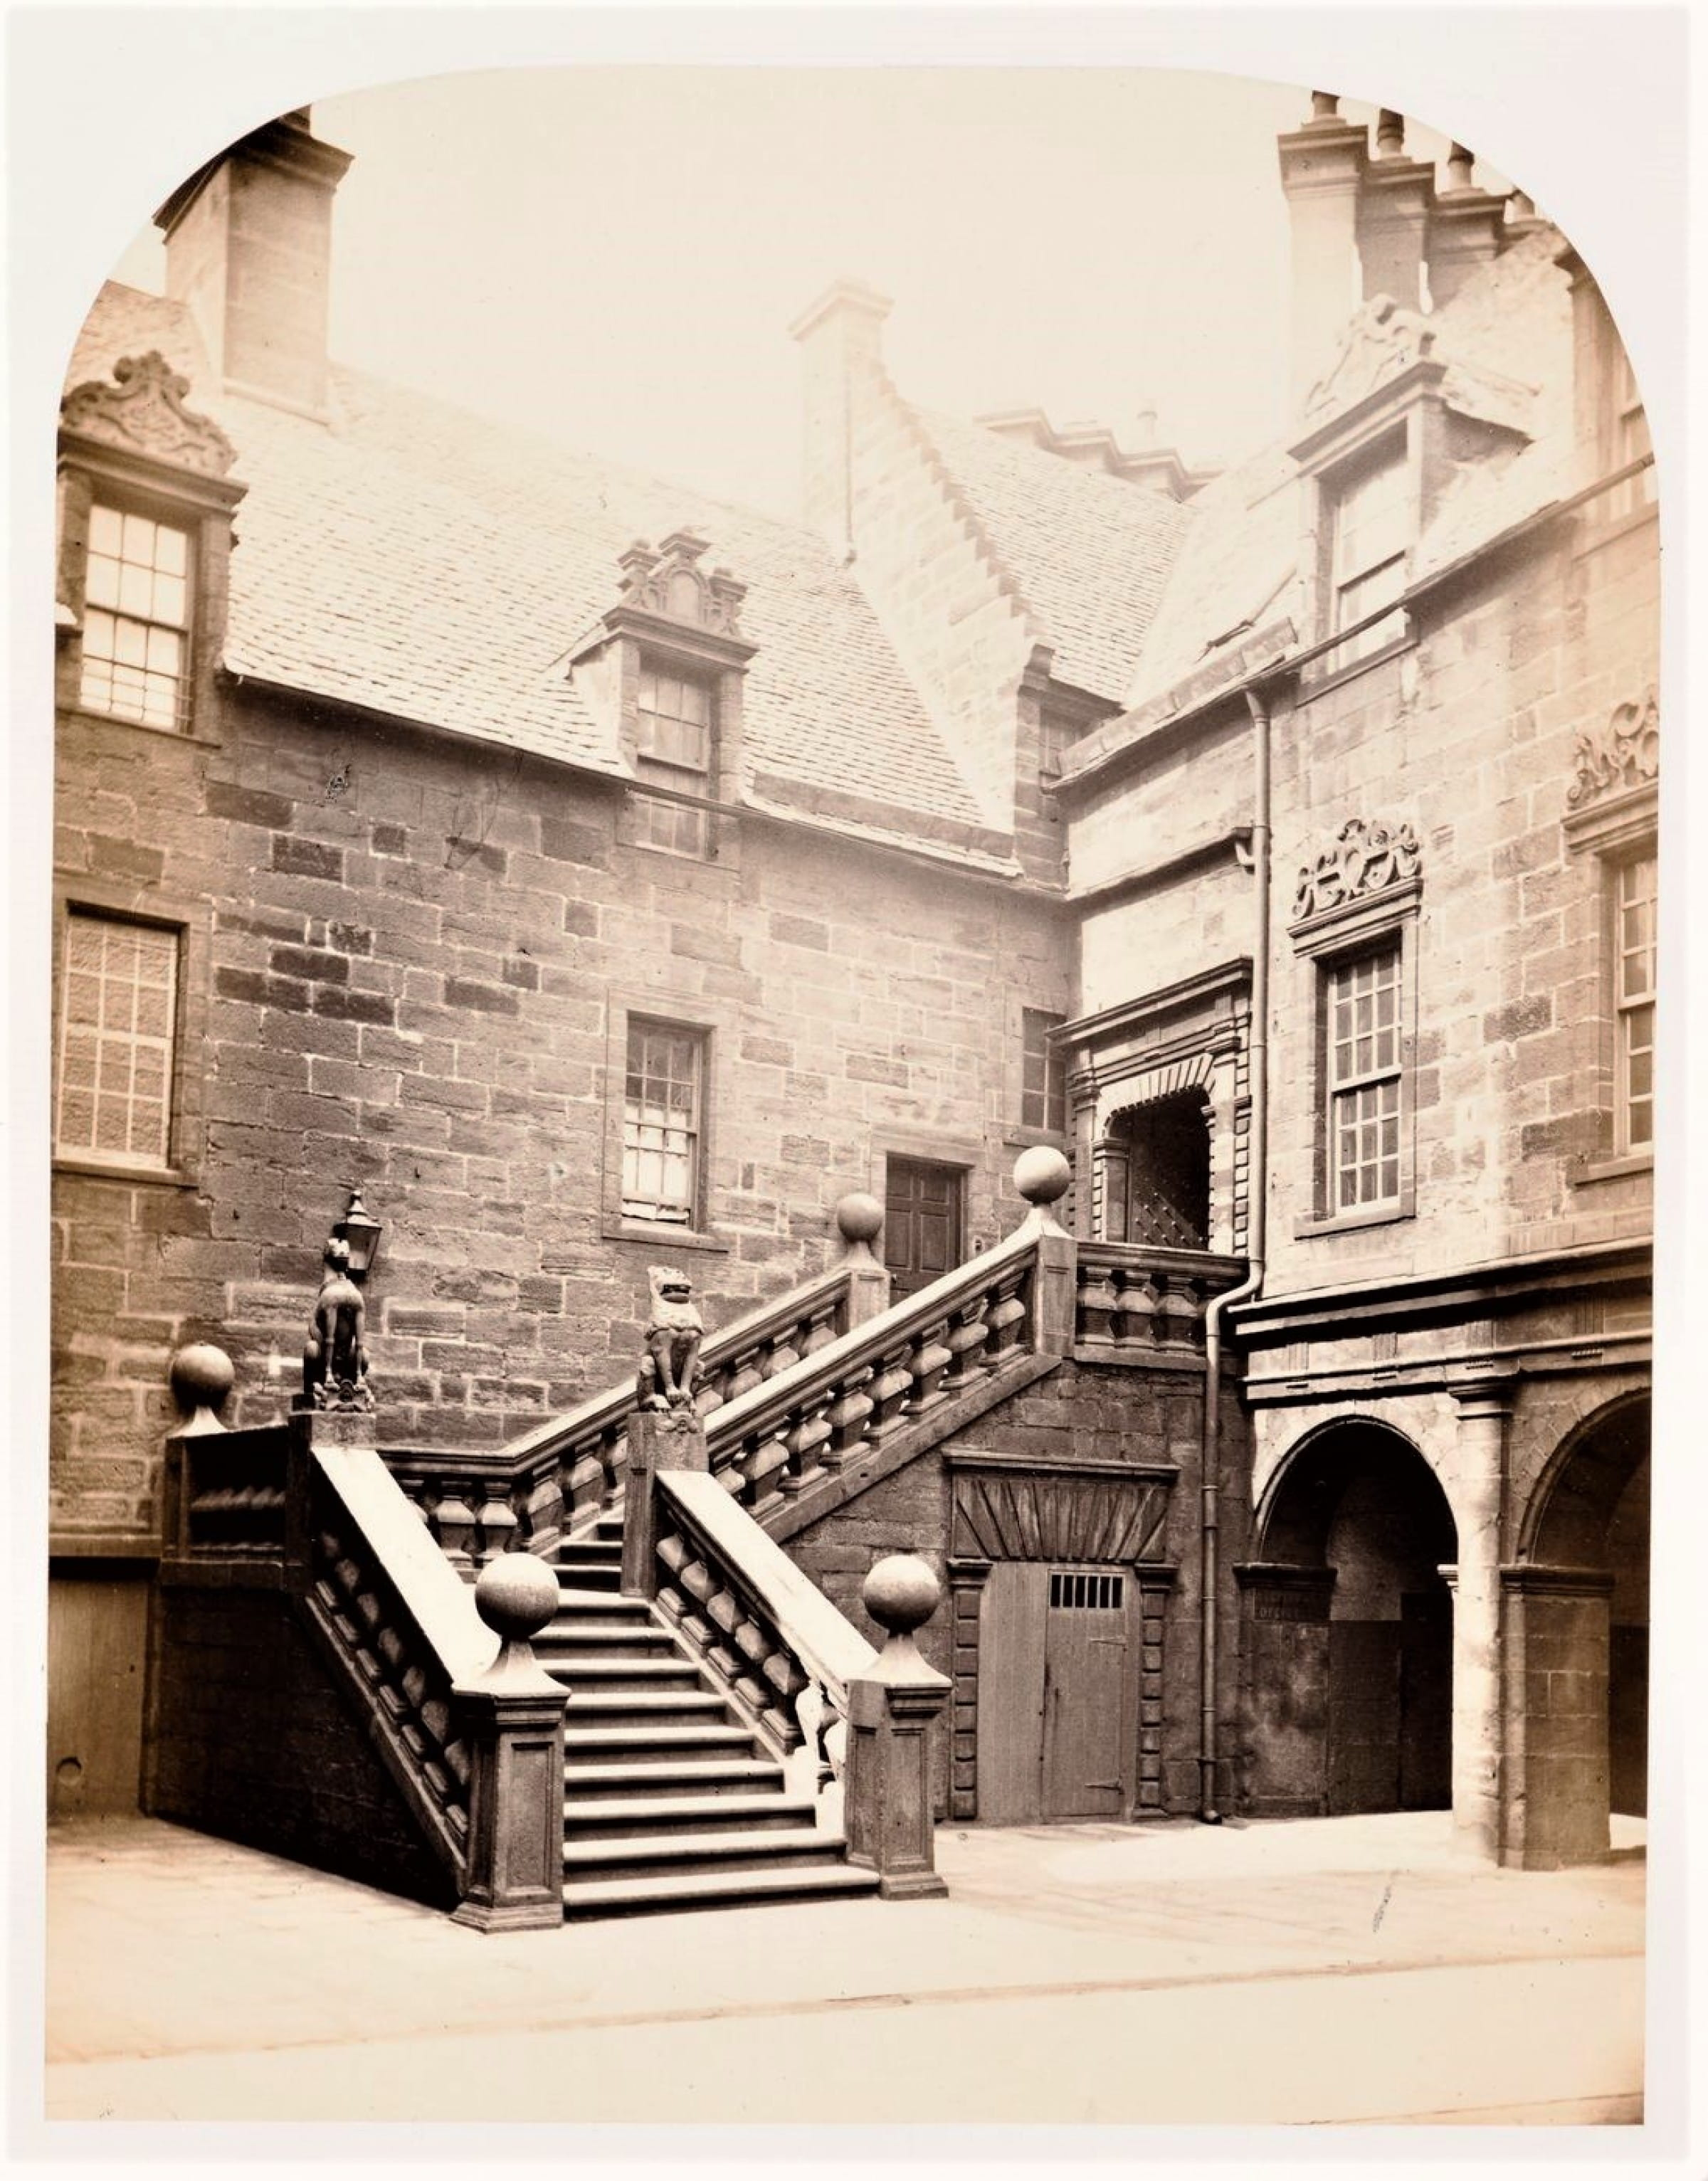 Unicorn spotted in Glasgow (The Lion and Unicorn Staircase, at the old Glasgow University (Thomas Annan, 1866))